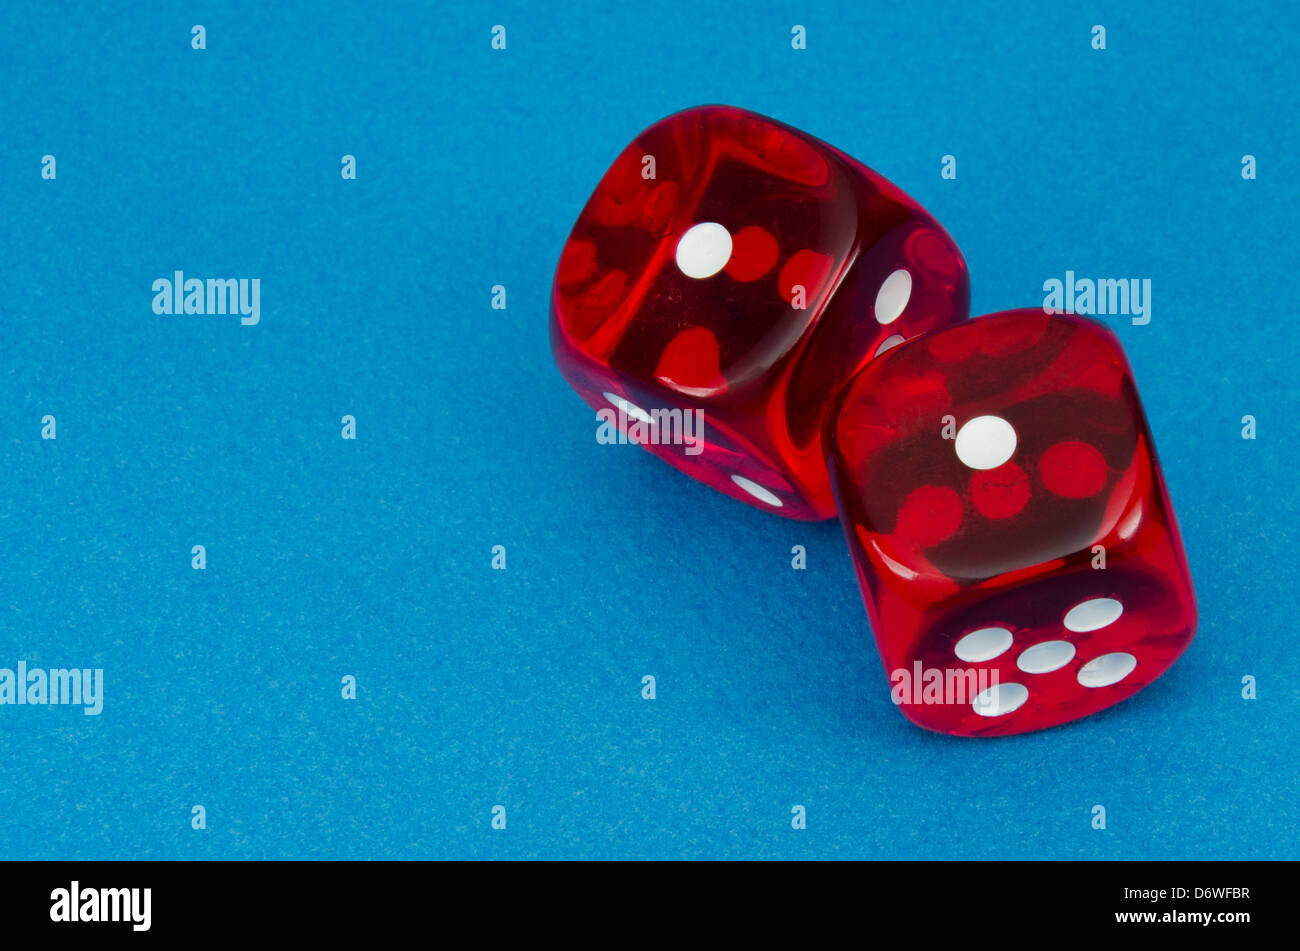 Pair of red dice over blue bakground showing two ones, snake eyes - Stock Image